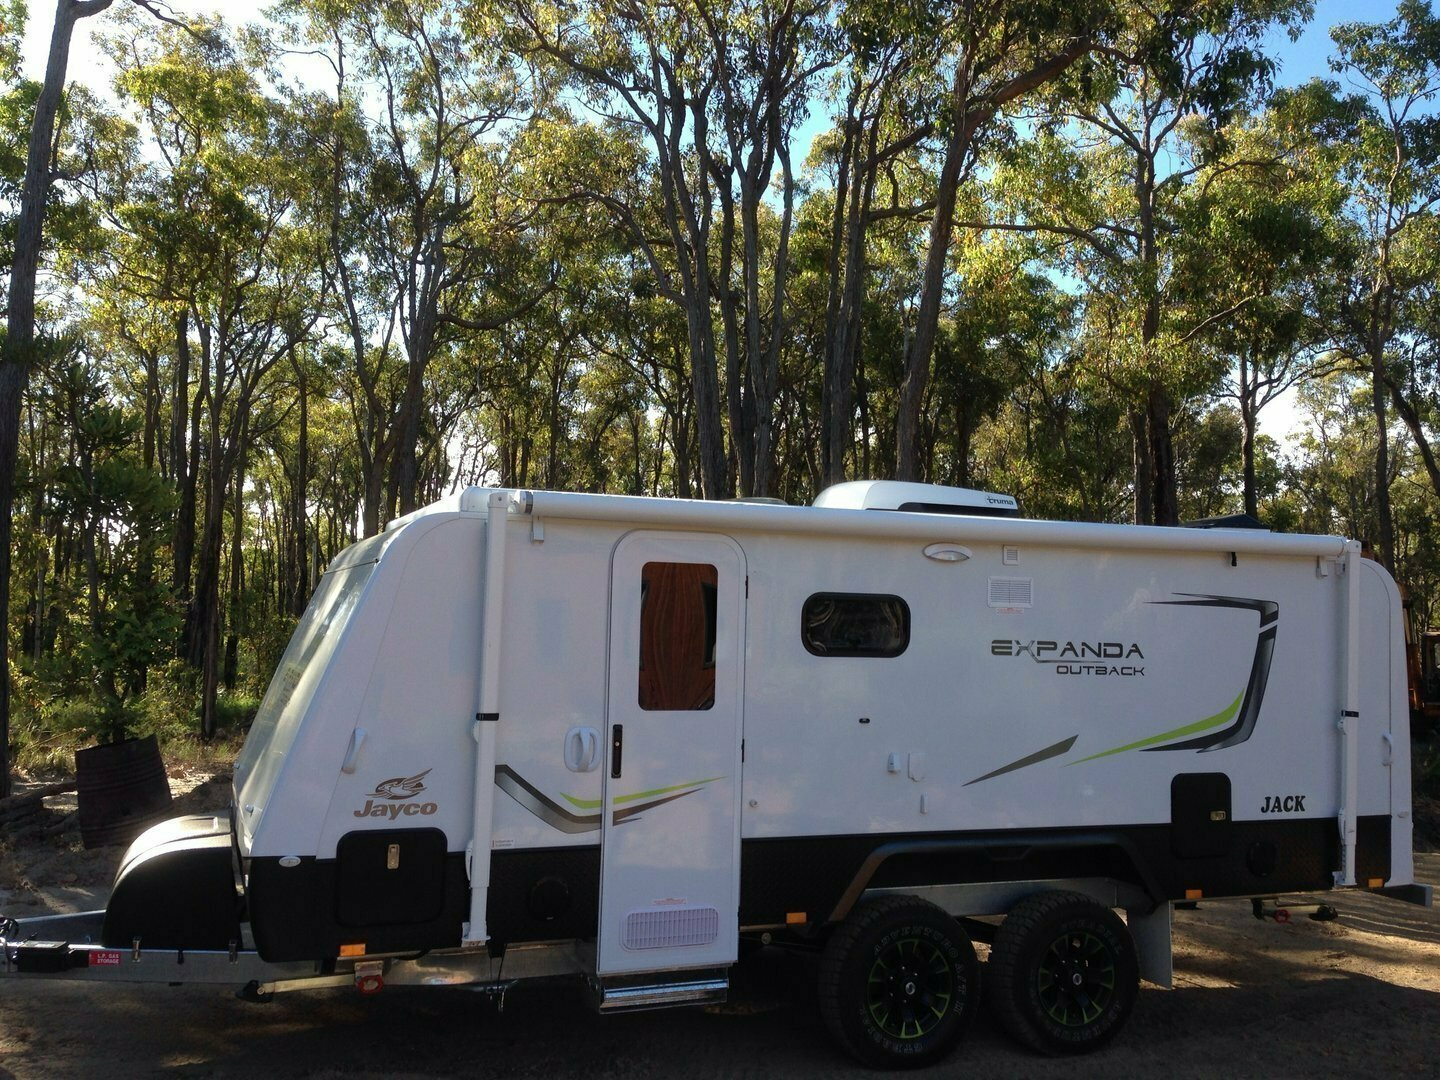 Expander For Hire In Parkerville Wa From 120 0 Jack Camplify